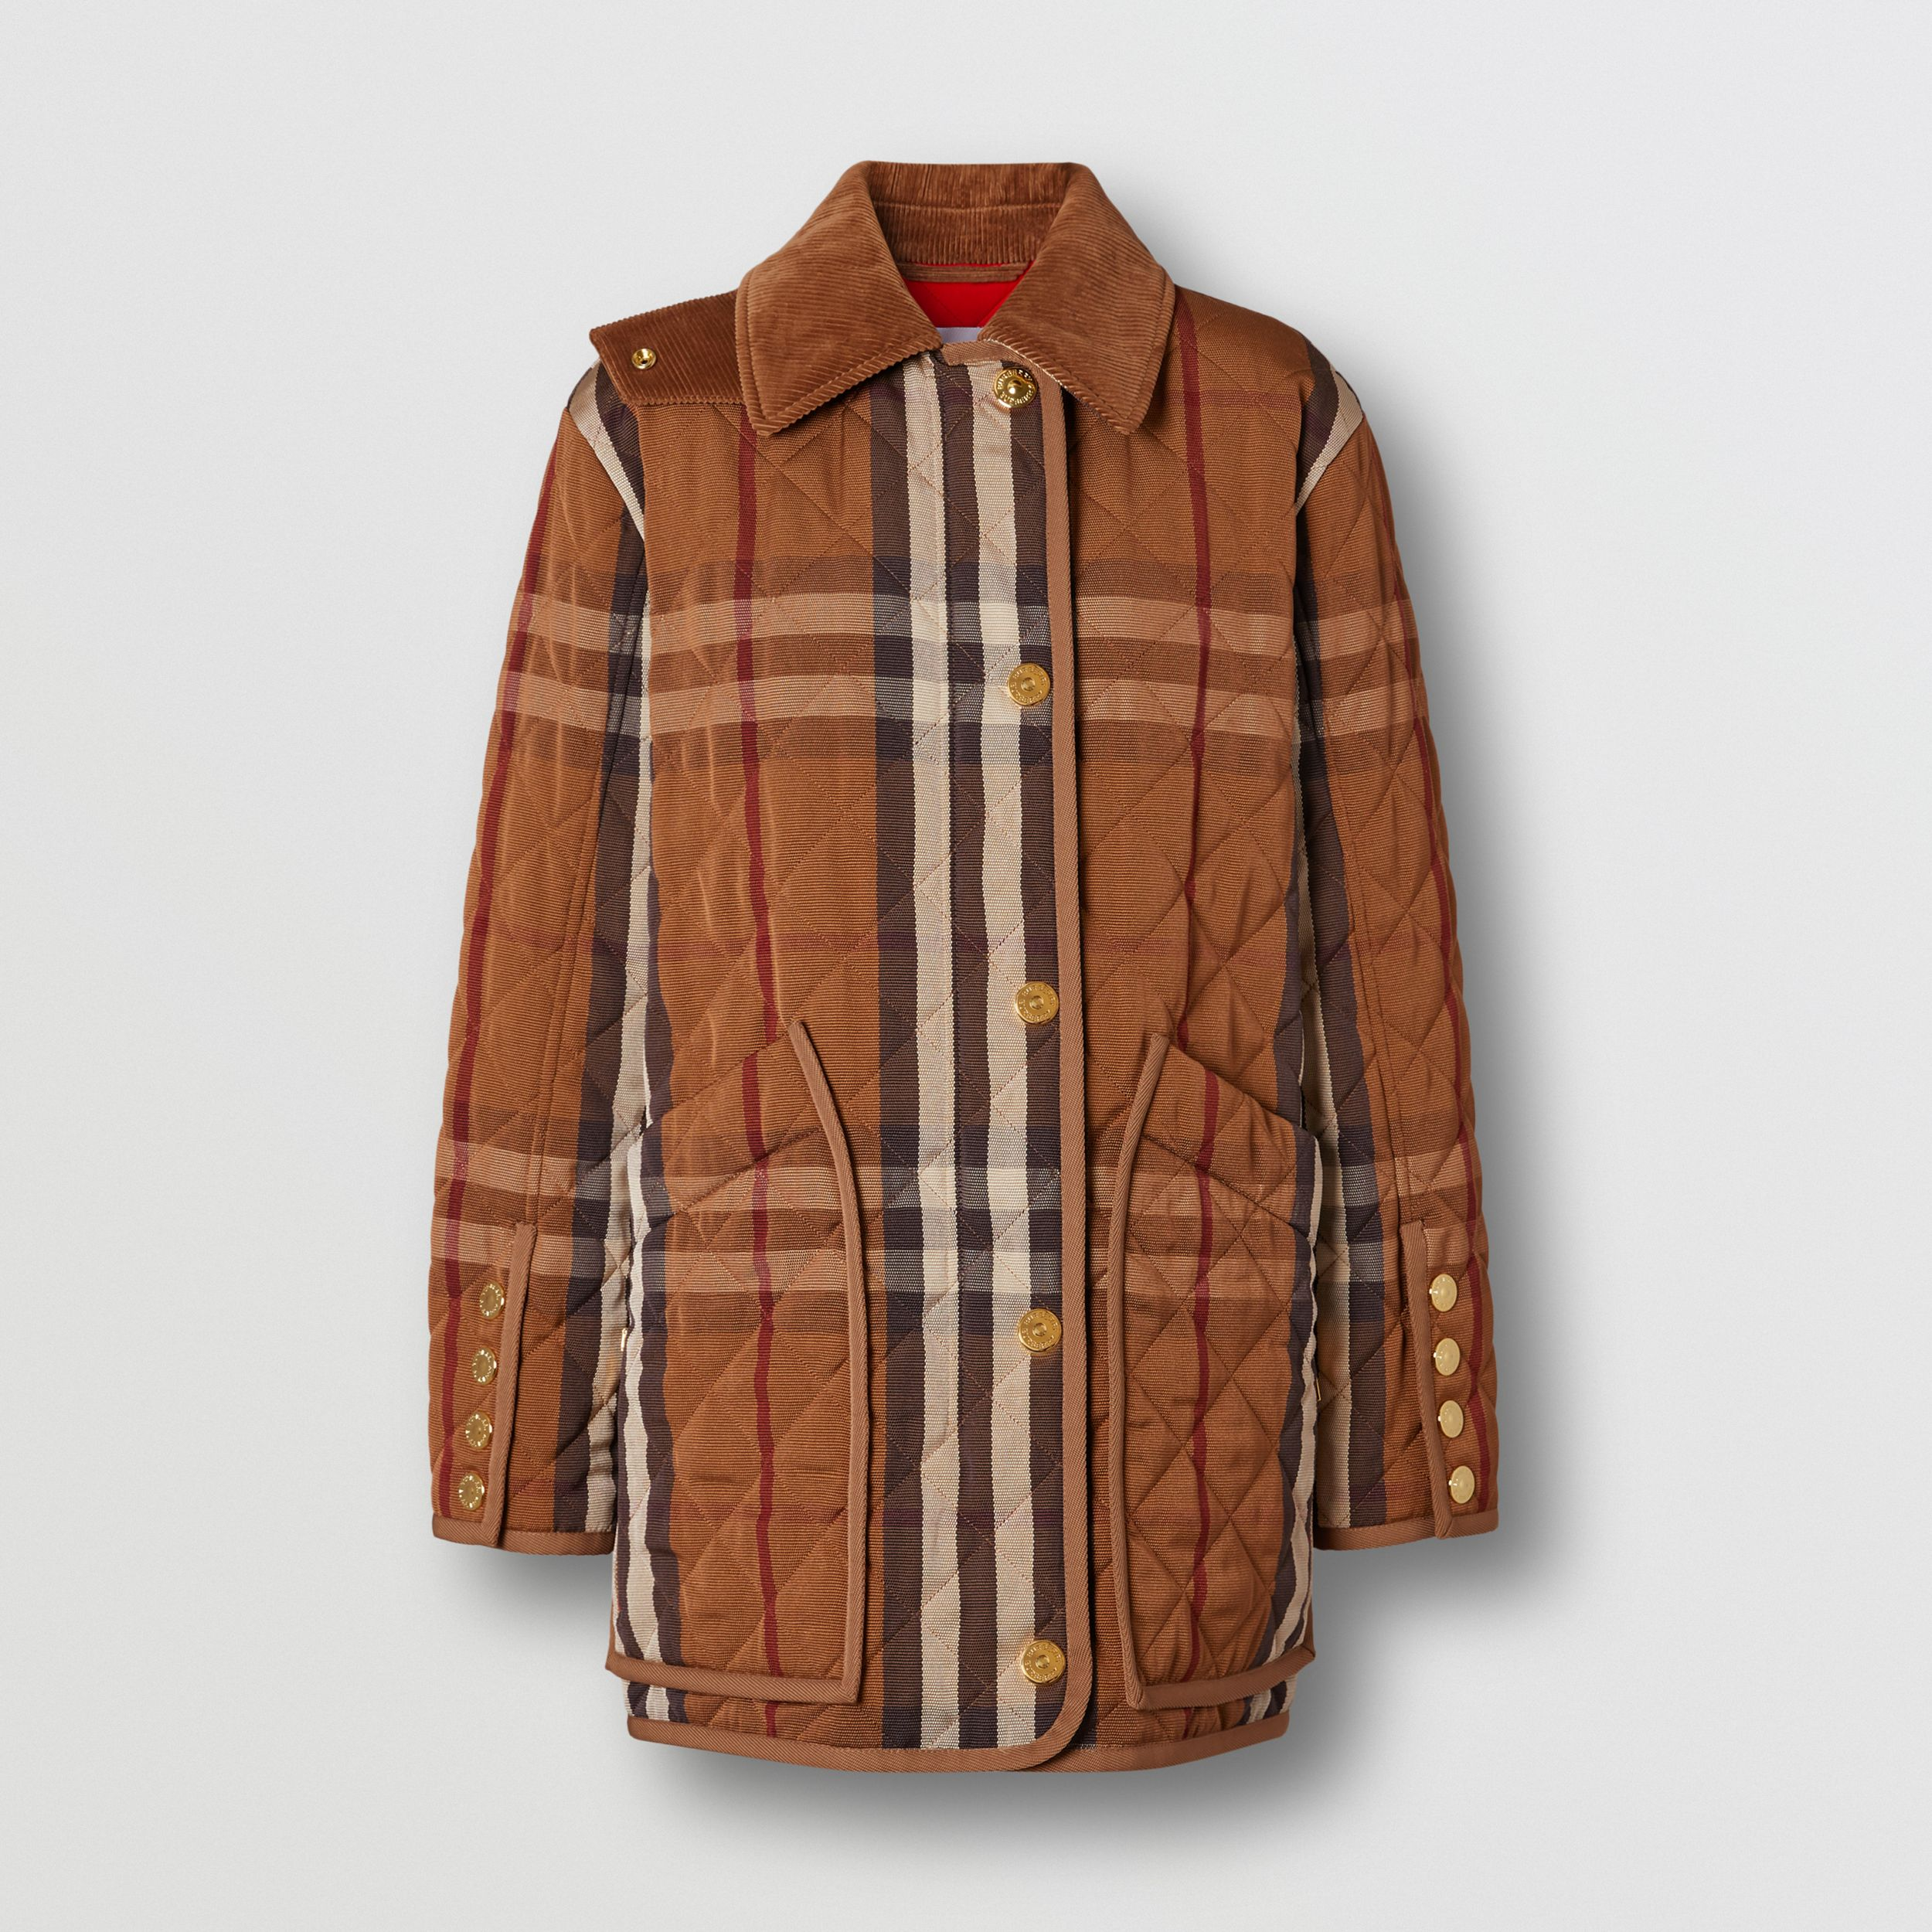 Diamond Quilted Check Technical Cotton Barn Jacket in Birch Brown - Women | Burberry - 4